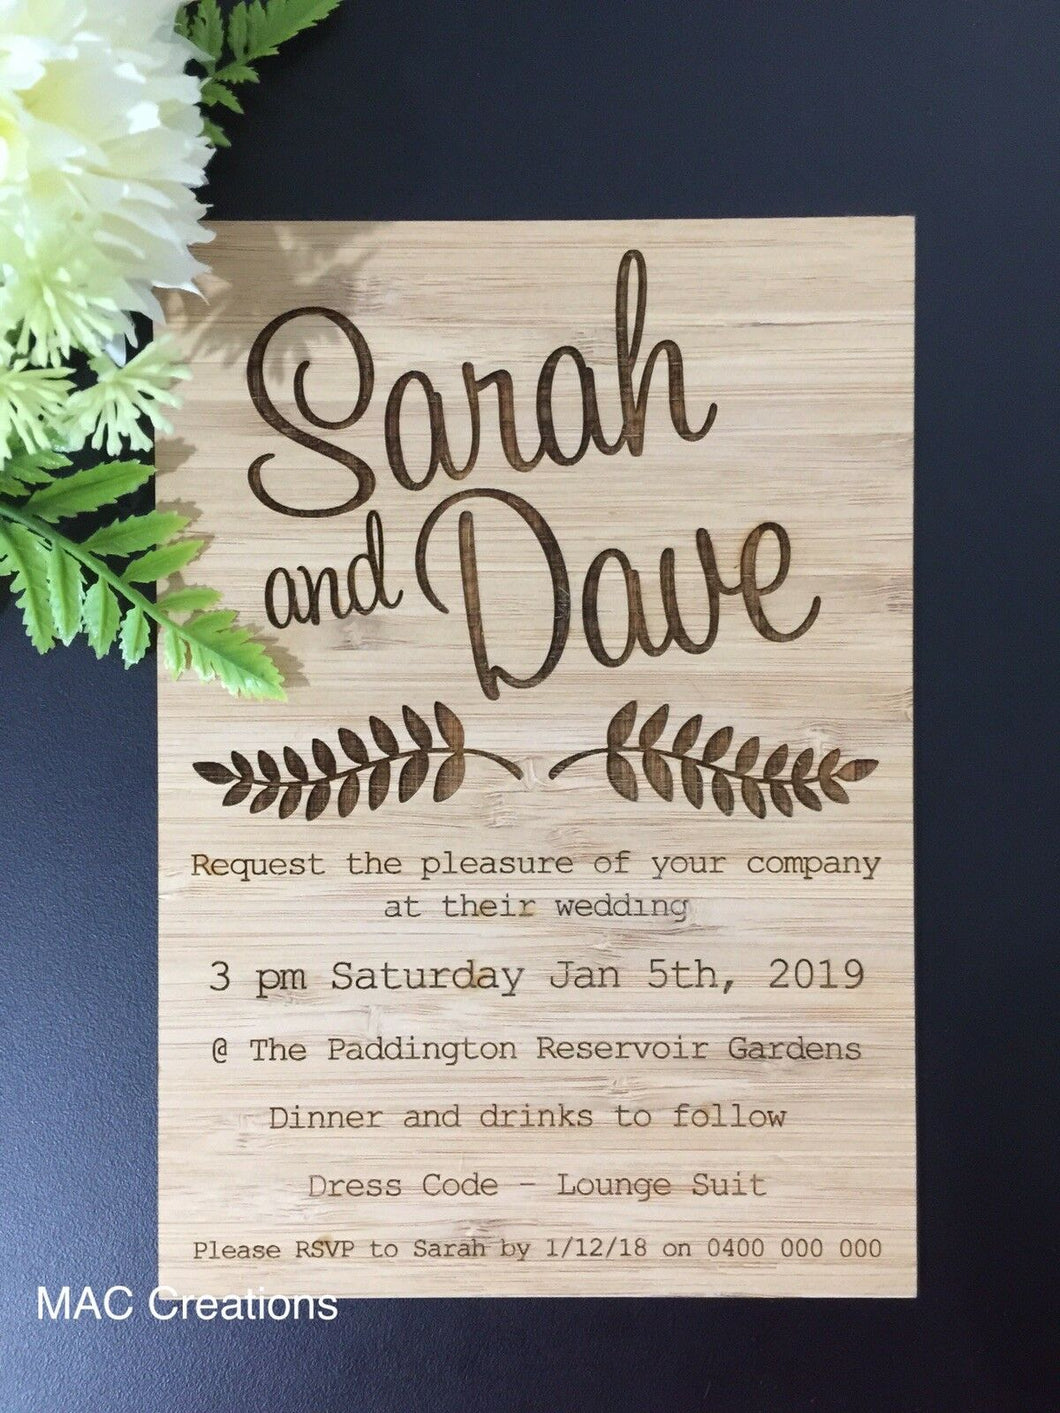 Personalised Wedding Invitations - MAC Creations Laser Co.